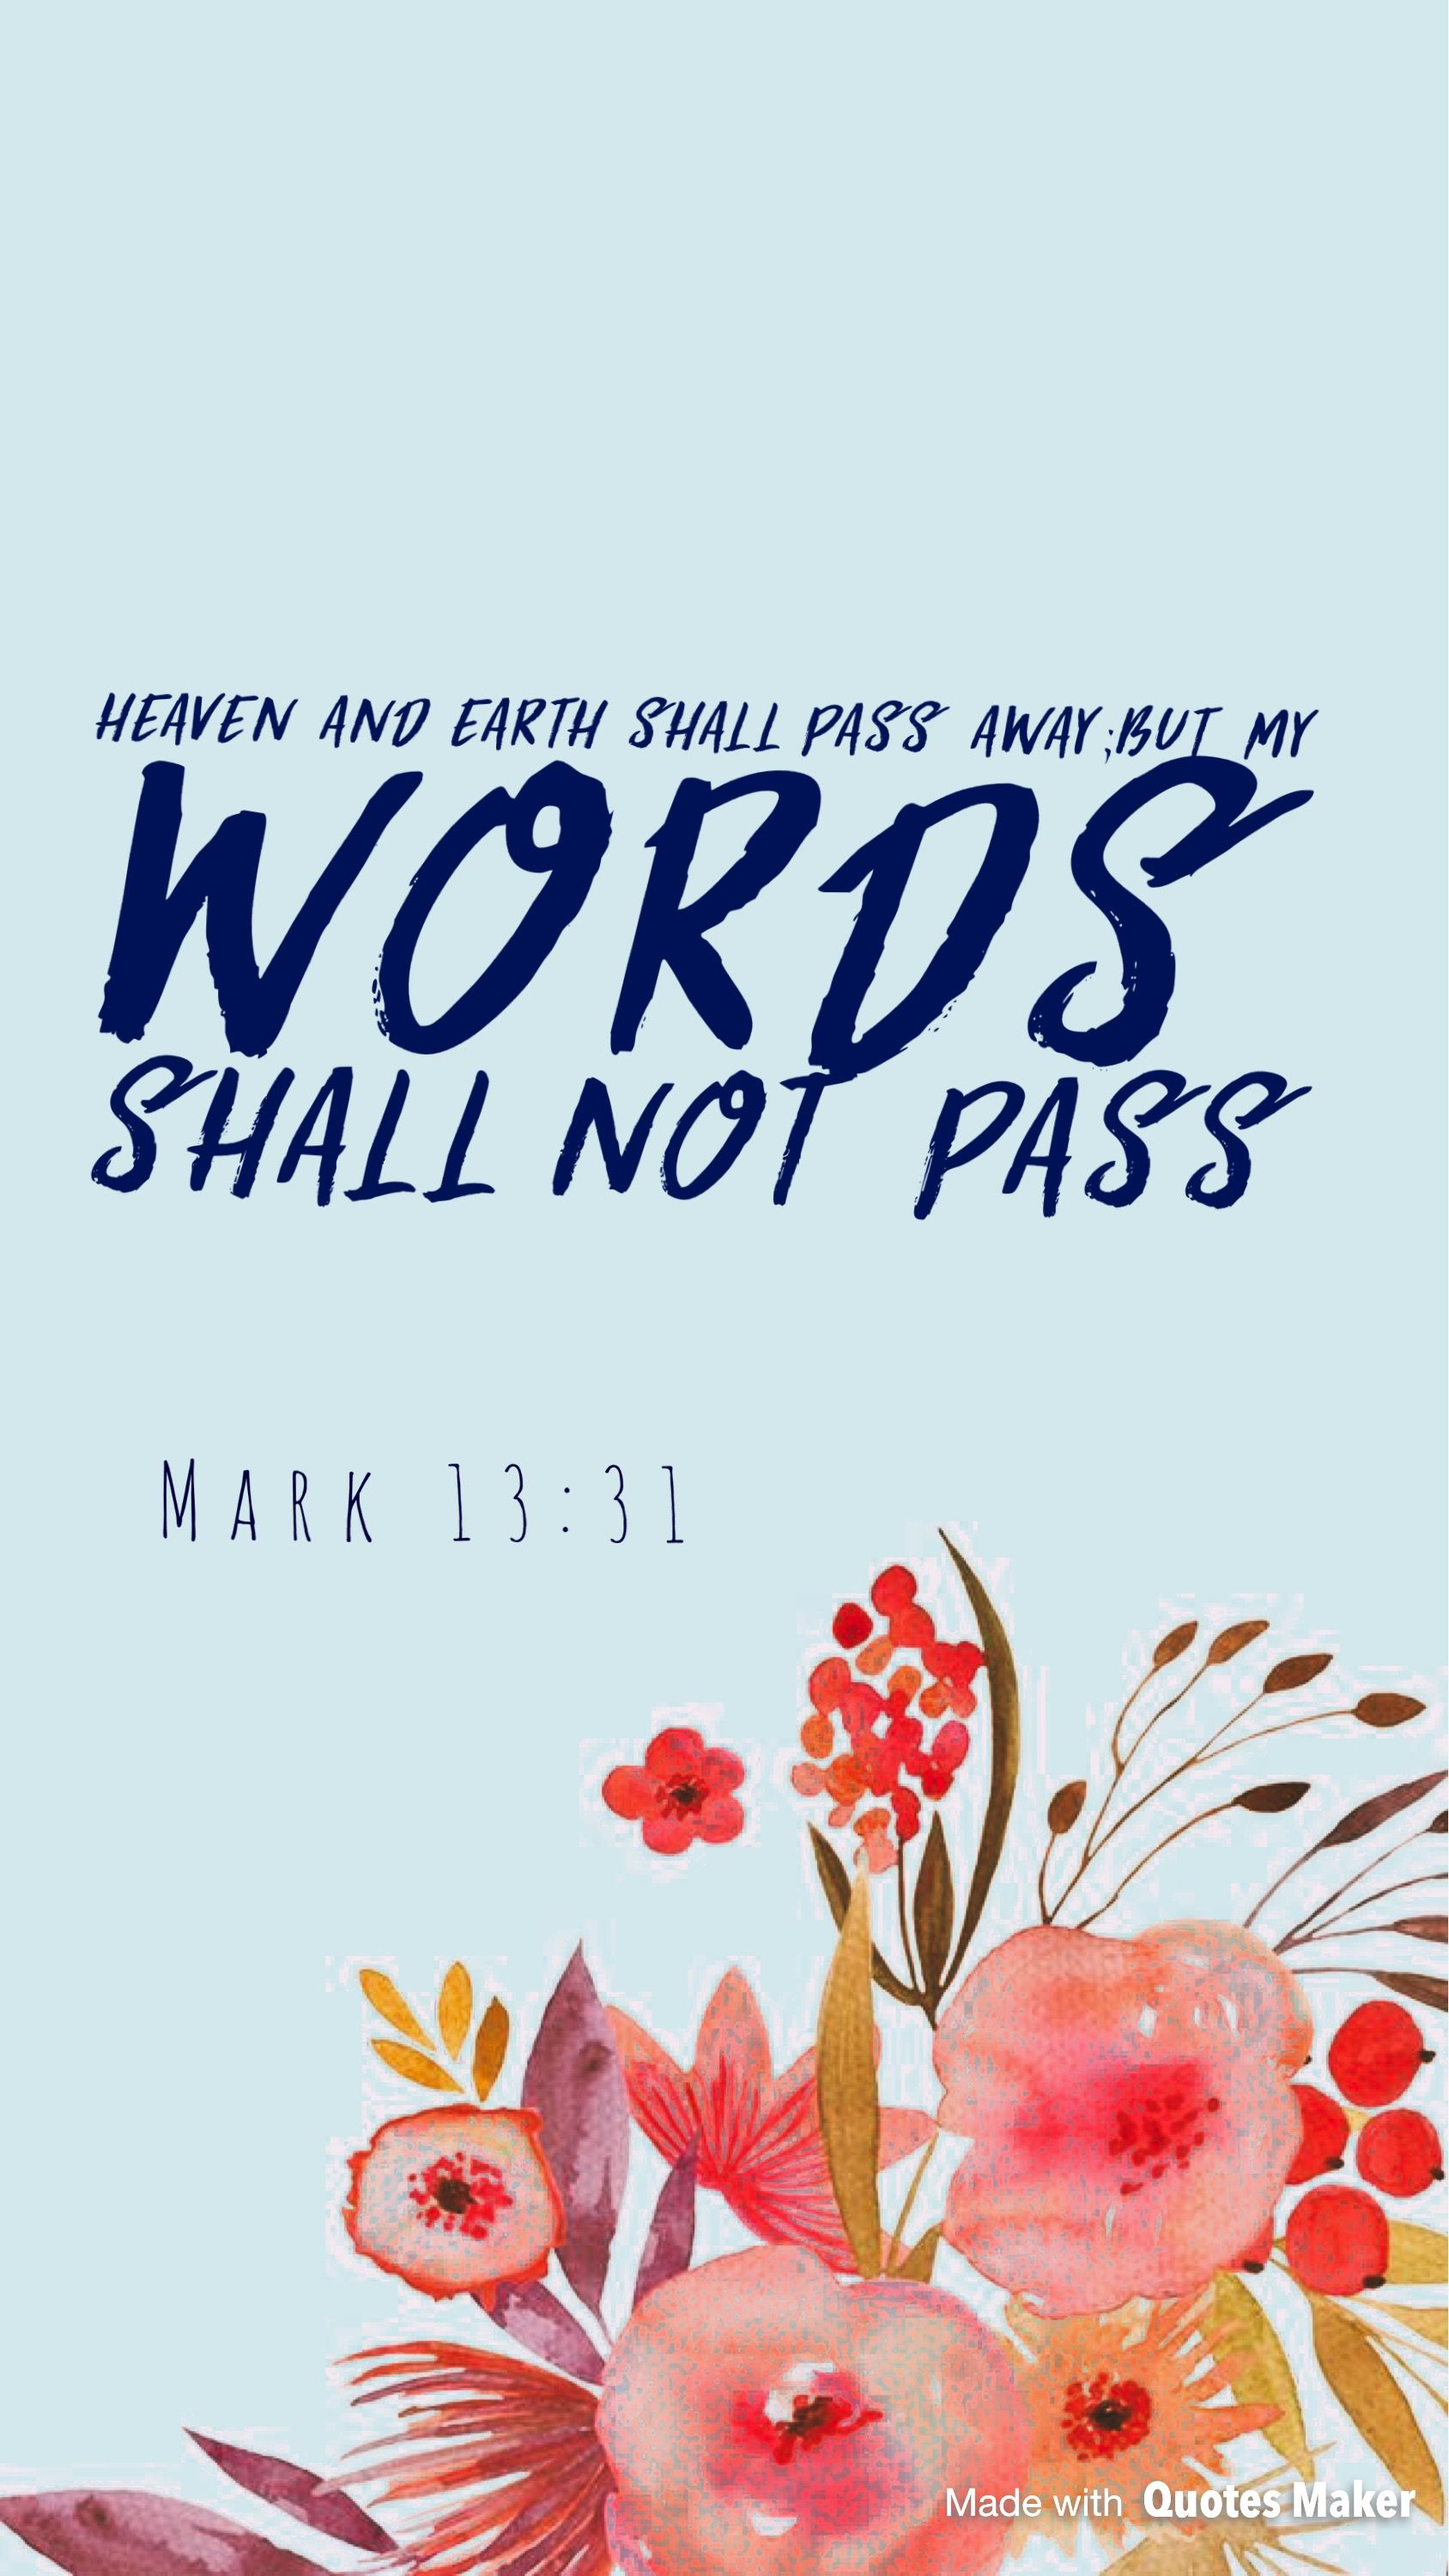 Mark 13:31 | Gospel Wisdom | Bible quotes, Faith quotes, Bible verses